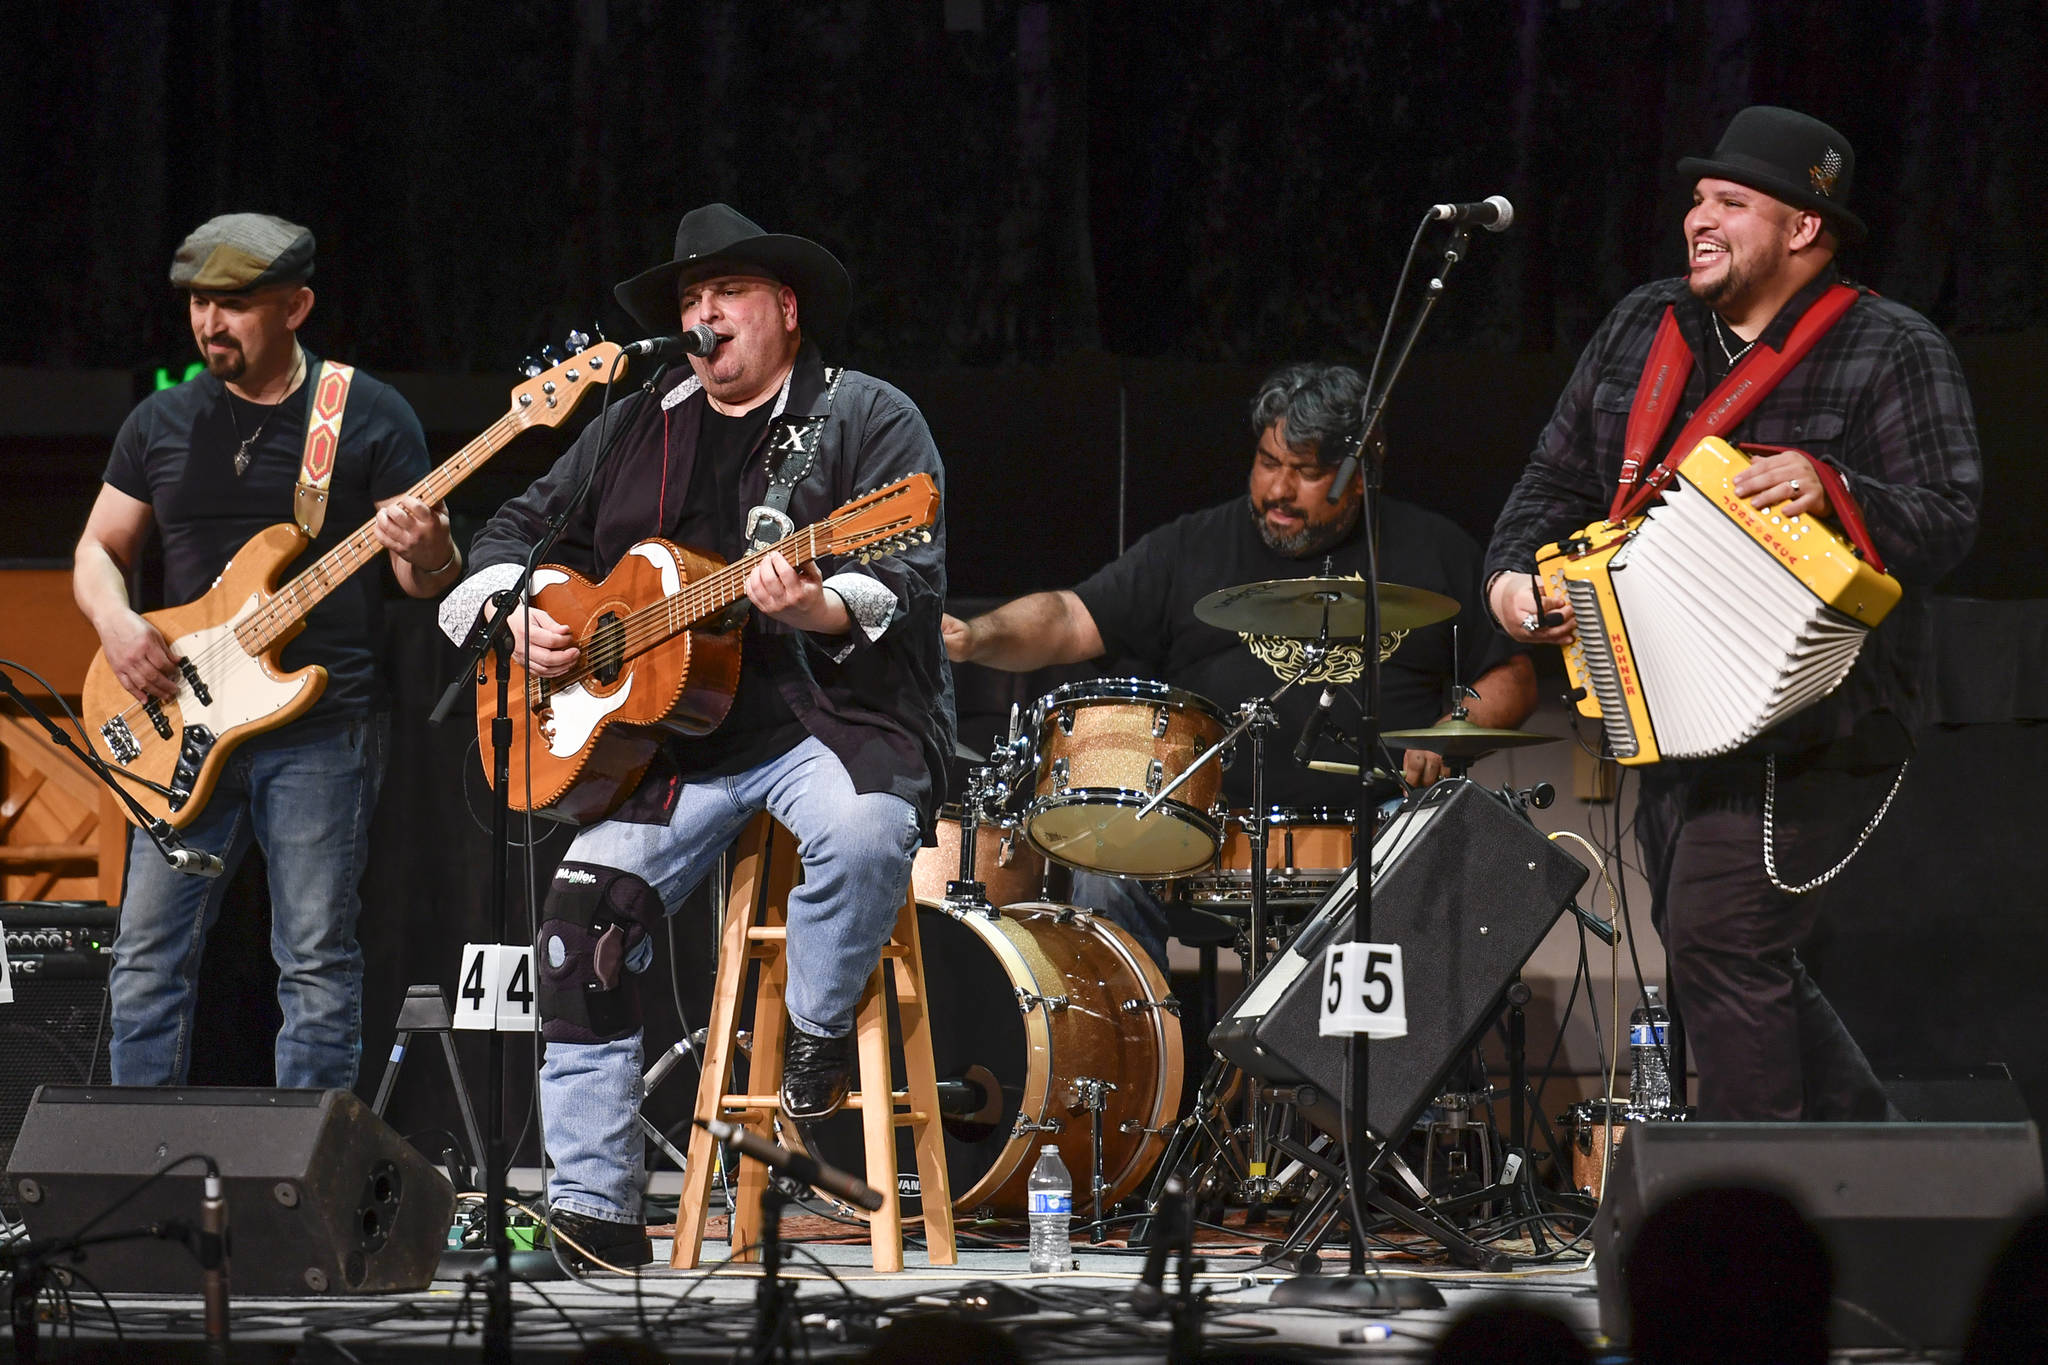 Los Texmaniacs, of San Antonio, Texas, perform as the guest artist at the 45th annual Alaska Folk Festival at Centennial Hall on Thursday, April 11, 2019. From left: Noel Hernandez, Max Baca, Daniel Martinez and Josh Baca. (Michael Penn | Juneau Empire)